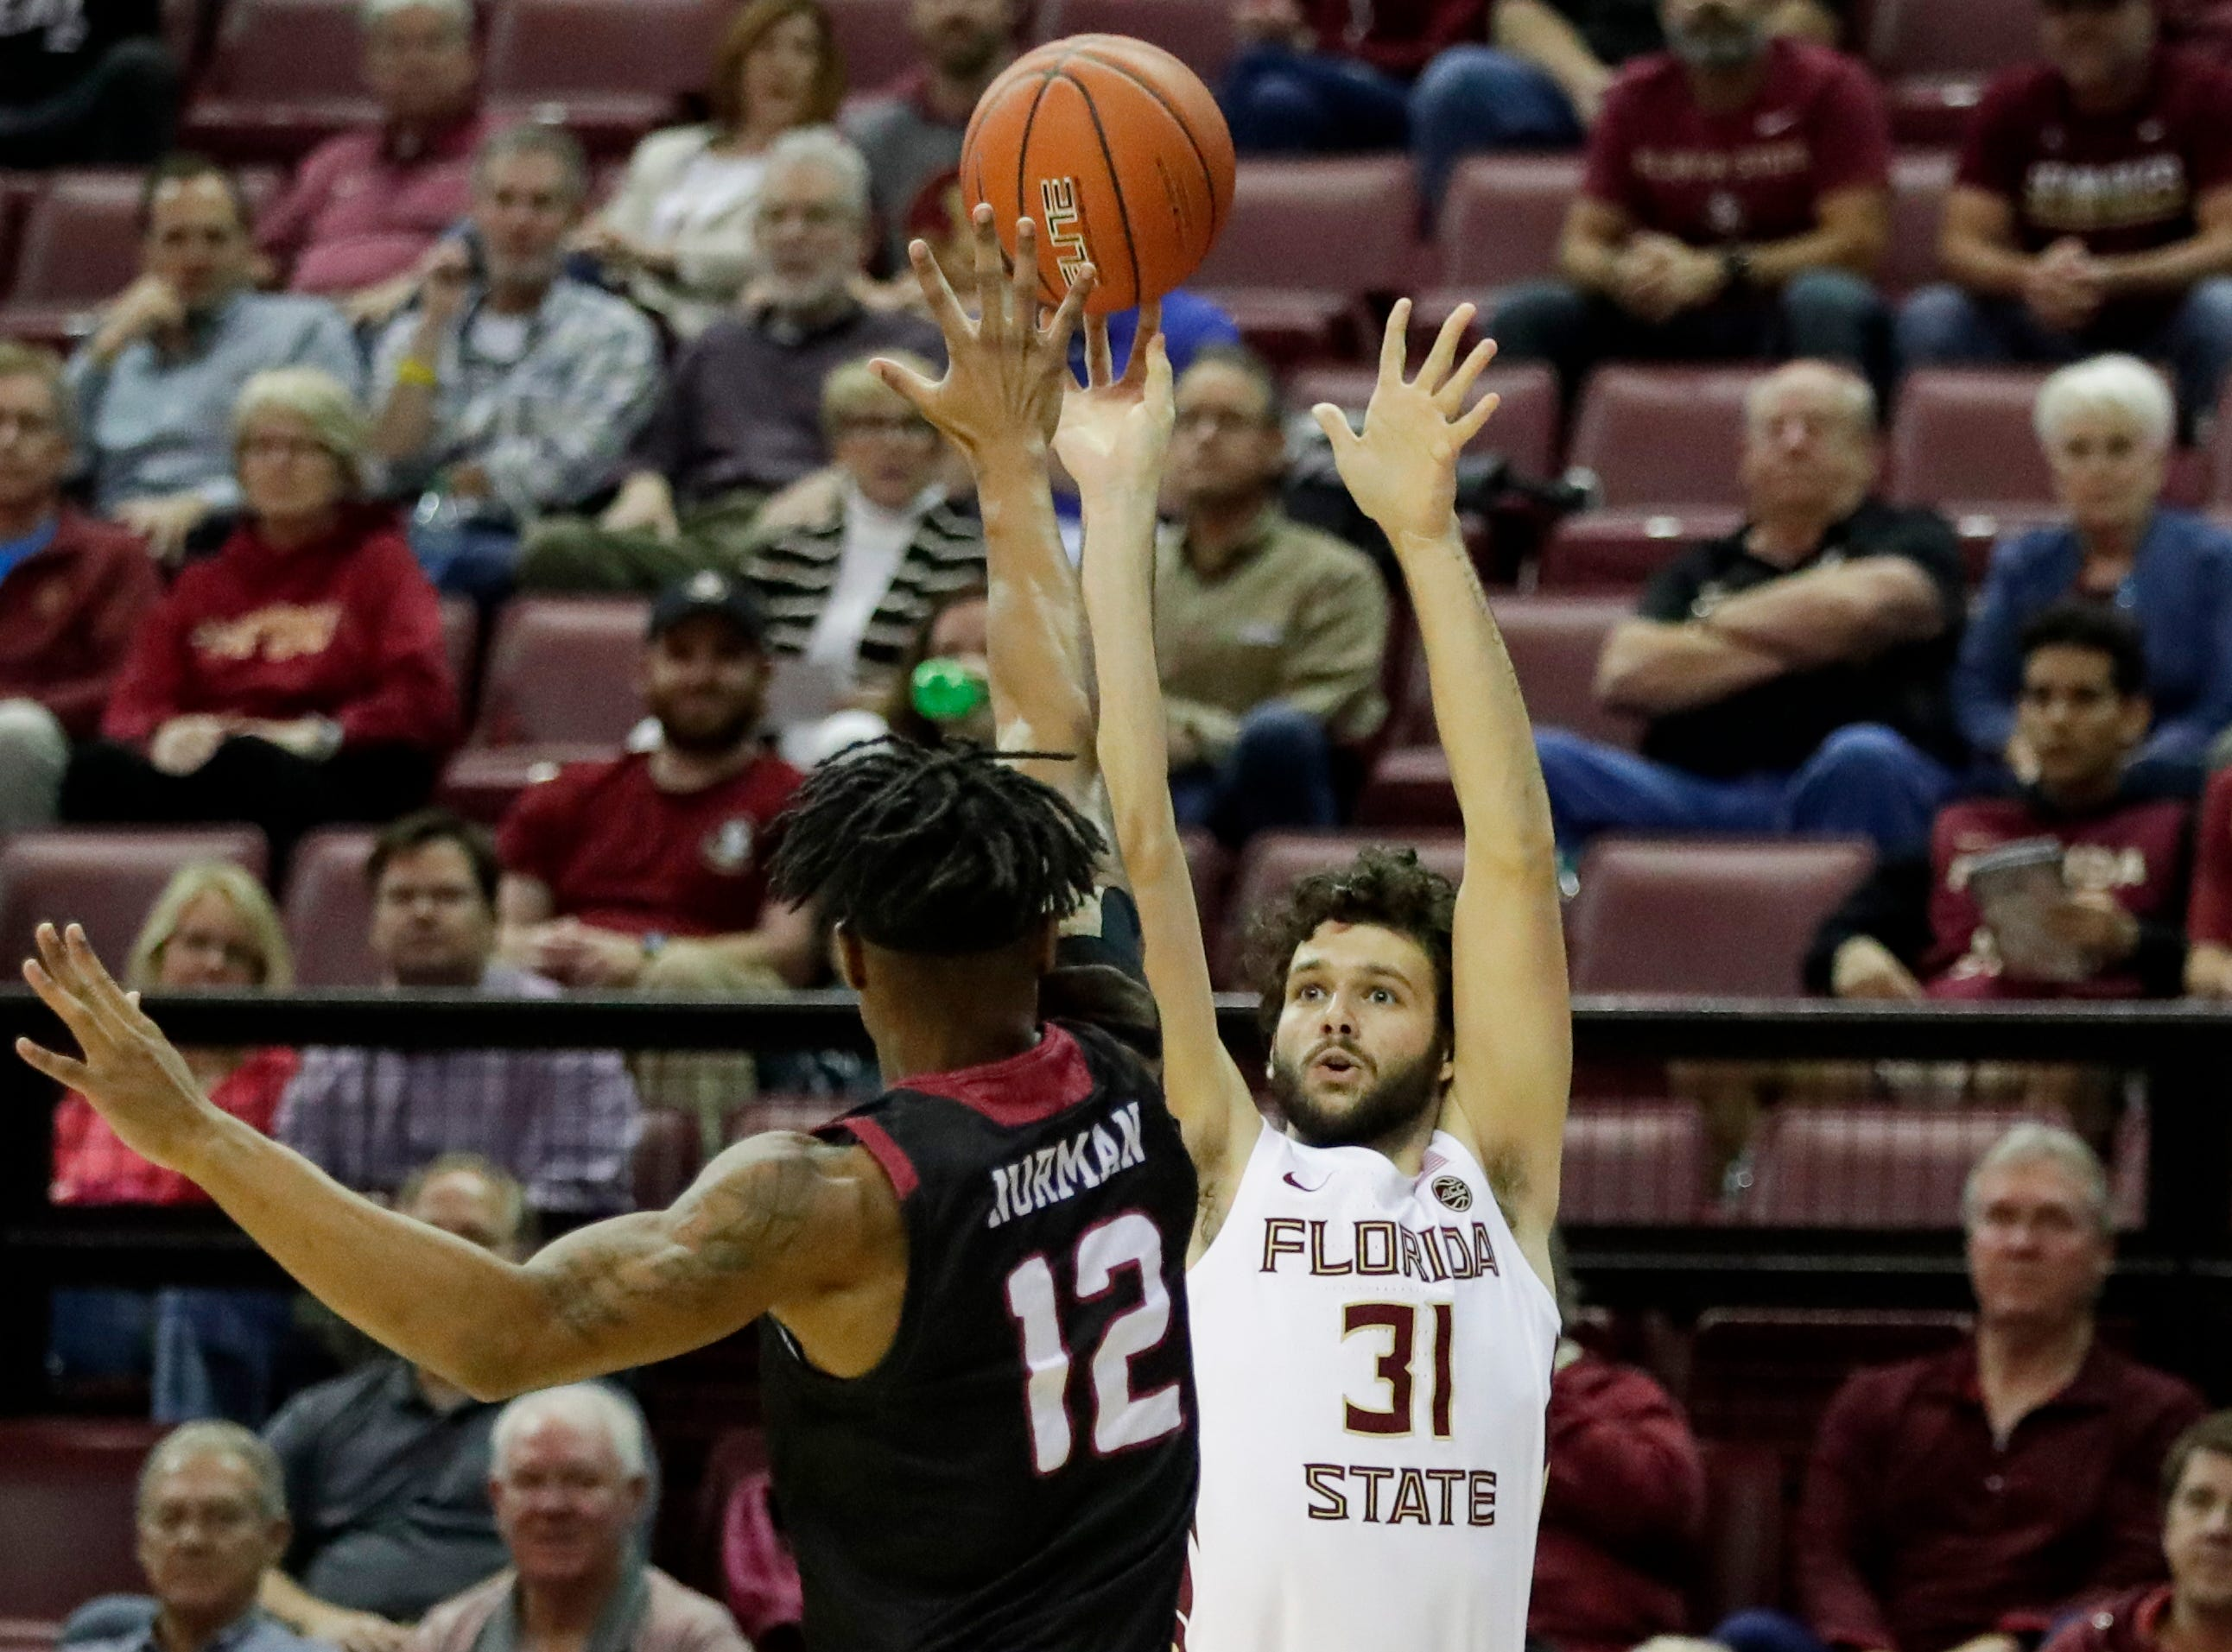 Florida State Seminoles guard Wyatt Wilkes (31) shoots from the outside during a game between FSU and Troy University at Donald L. Tucker Civic Center Monday, Dec. 3, 2018.